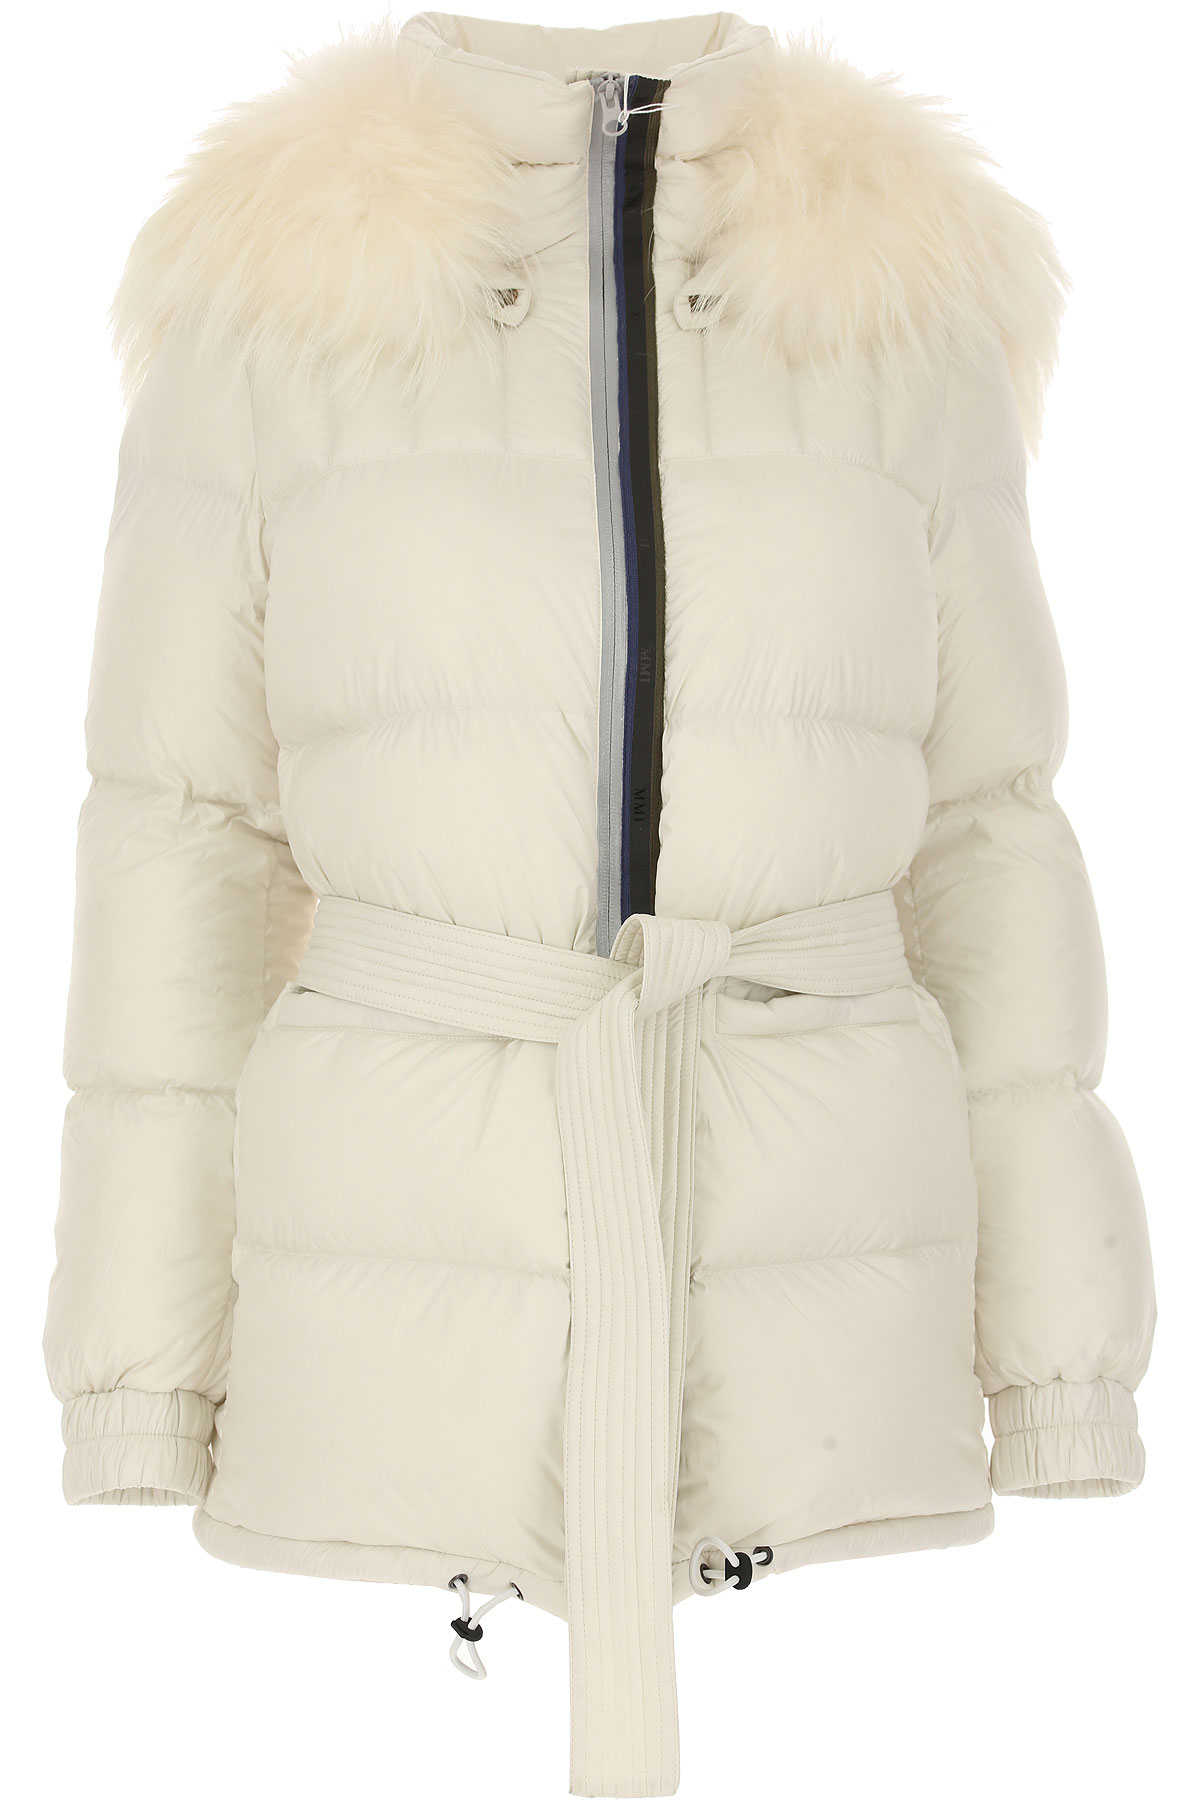 Image of Mr & Mrs Italy Down Jacket for Women, Puffer Ski Jacket, Cream, polyester, 2017, 4 6